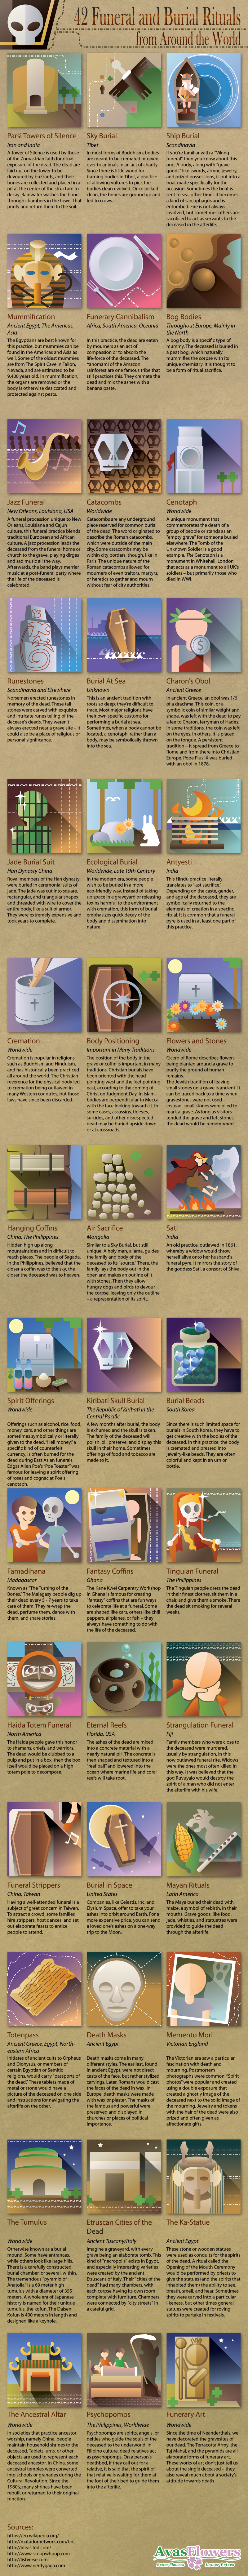 42 Funeral and Burial Rituals from Around the World - Avasflowers.net - Infographic